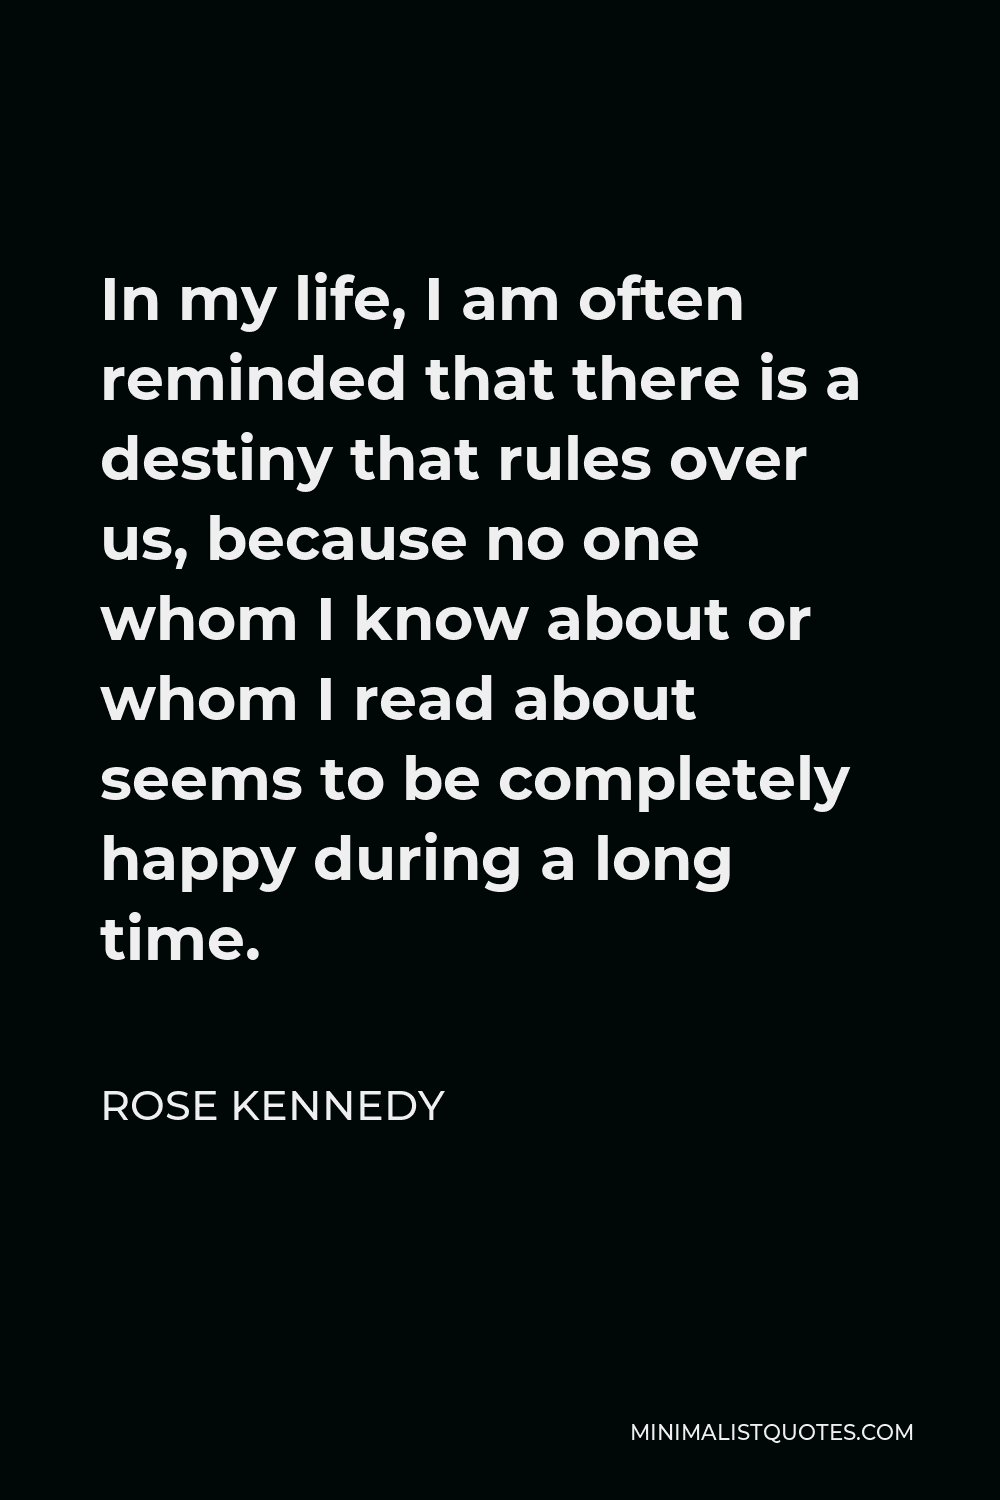 Rose Kennedy Quote - In my life, I am often reminded that there is a destiny that rules over us, because no one whom I know about or whom I read about seems to be completely happy during a long time.